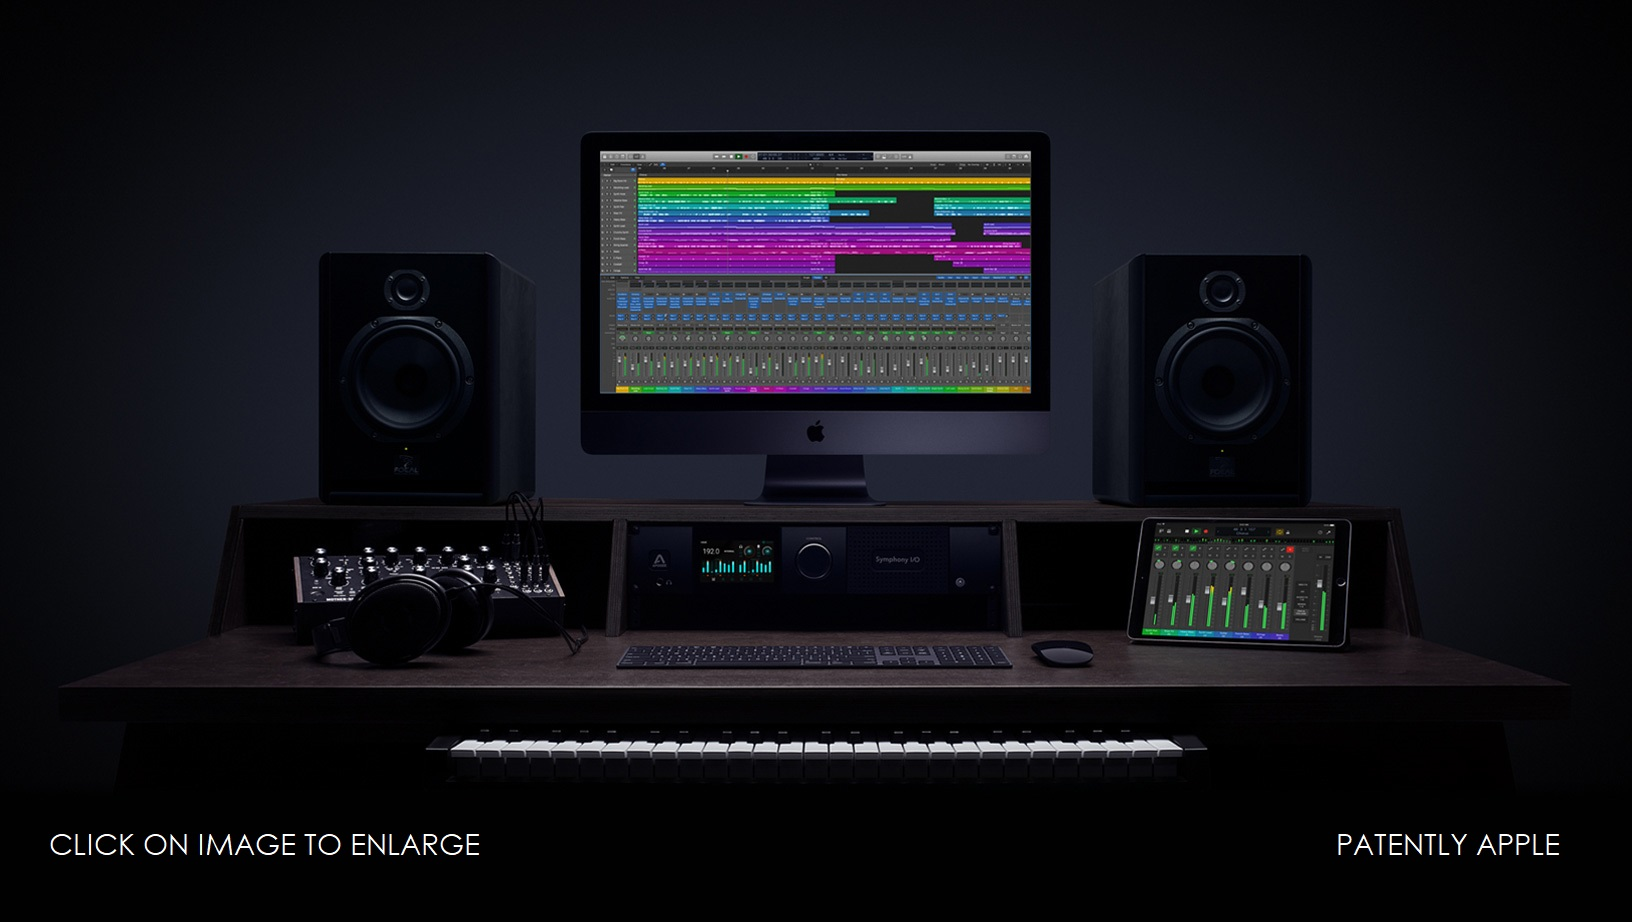 Existing Customers get to download Apple's Logic Pro X